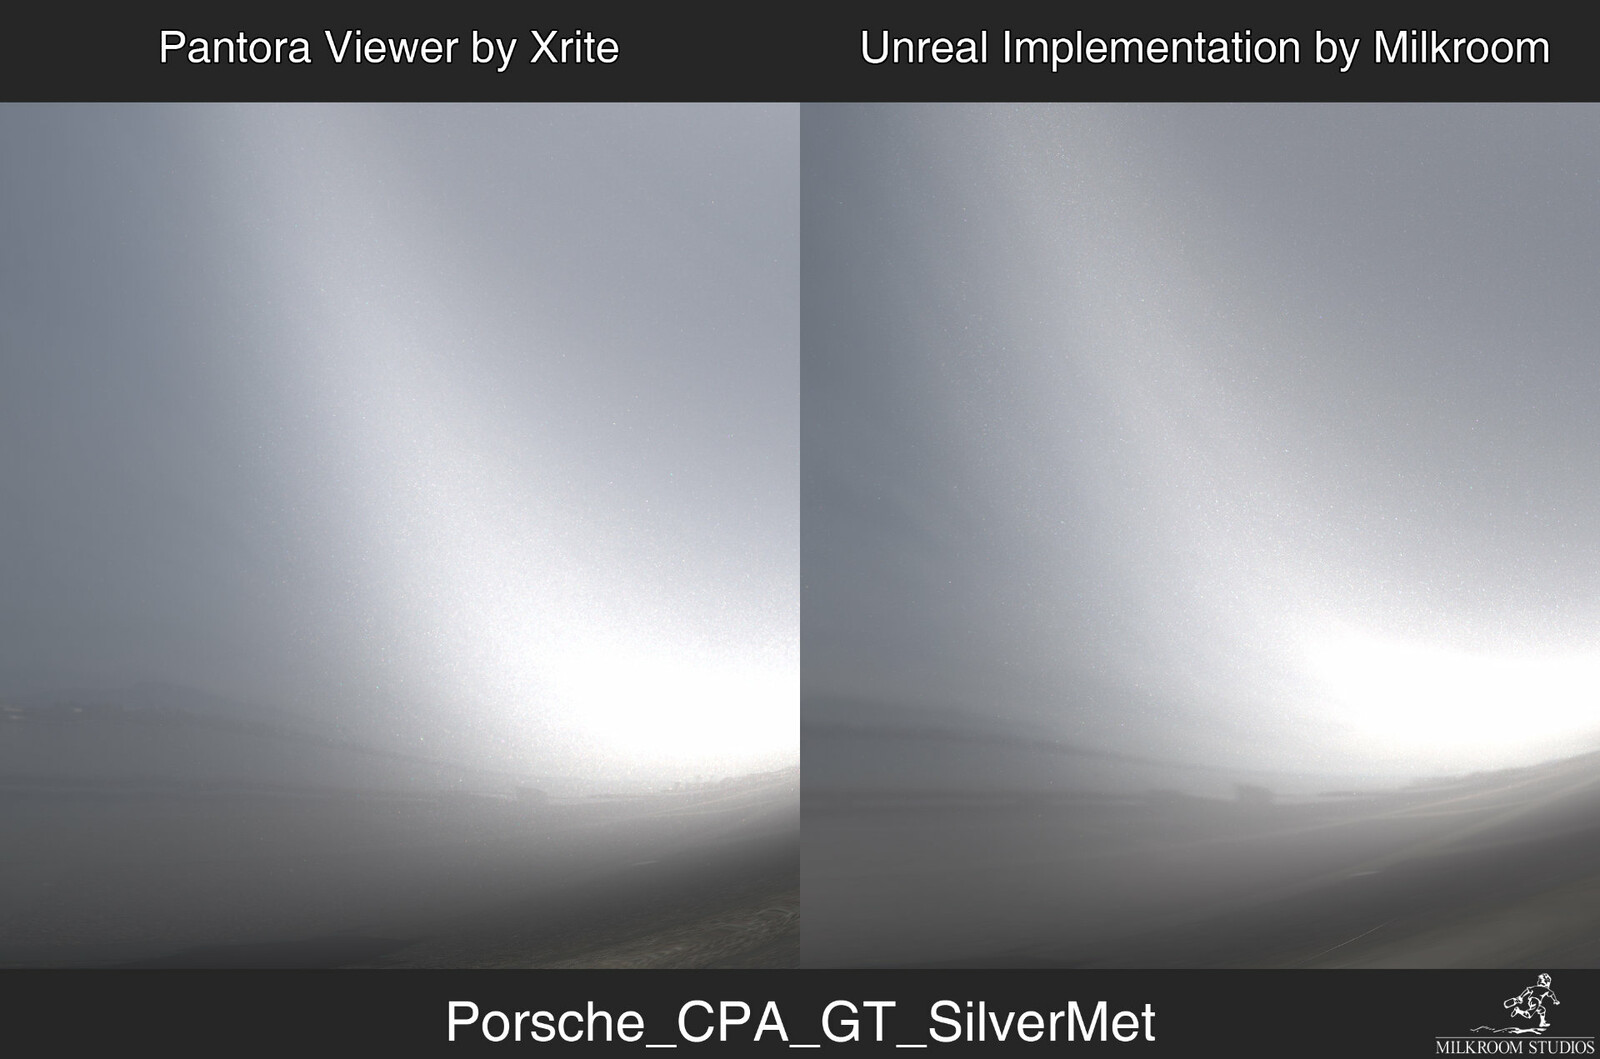 Comparing the behaviour of the flakes. The difference in the shading originates primarily from the difference in number and position of the lights emulating the image-based lighting.